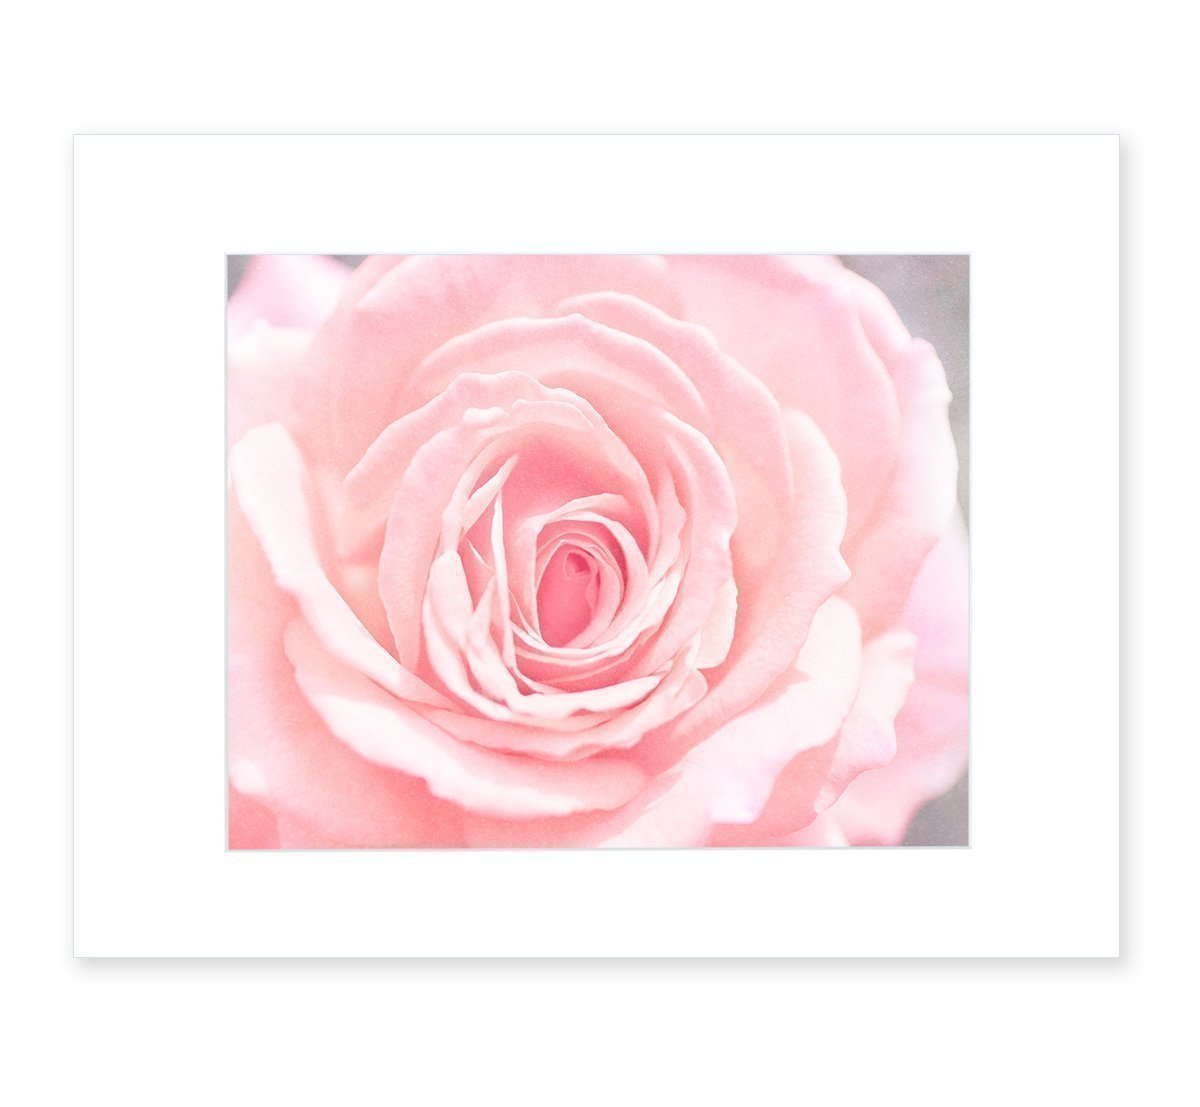 Pink Wall Art, Rose Flower Botanical Artwork, Chic Floral Decor, Girls Bedroom Picture, 8x10 Matted Photographic Print (fits 11x14 frame), 'Pink and Shabby' by Offley Green